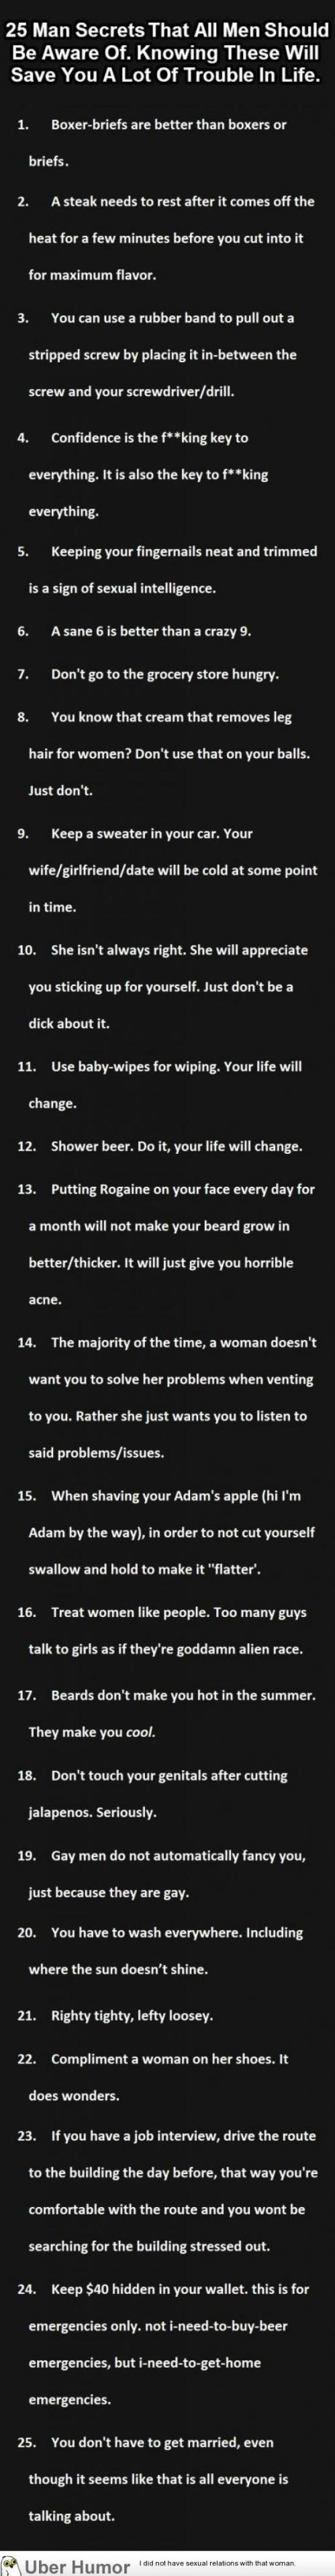 advice for men